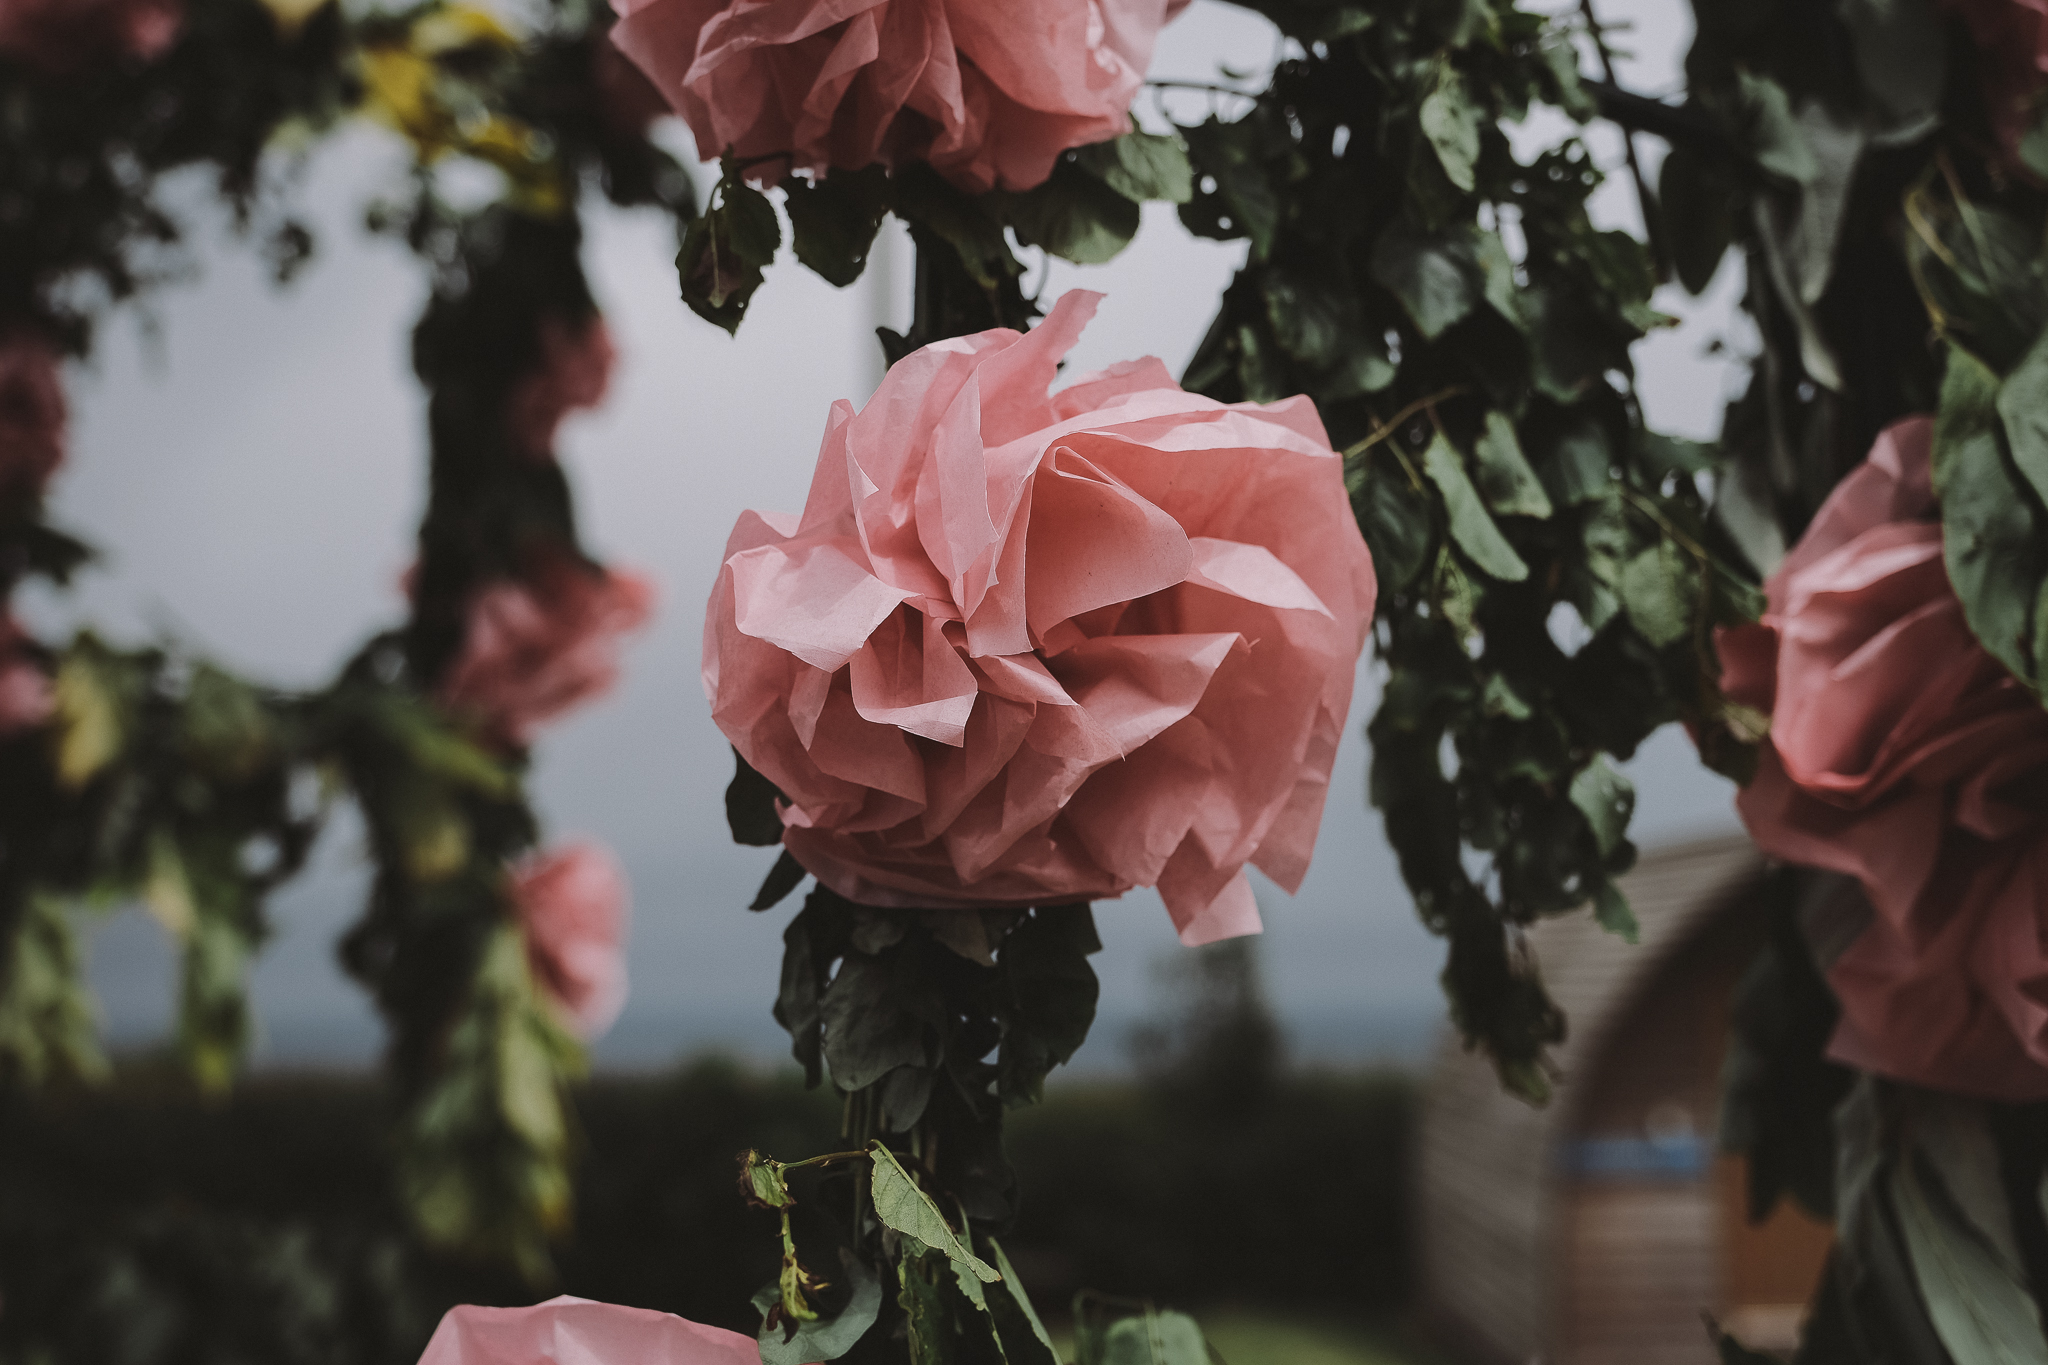 Close up of homemade paper flower for outdoor wedding ceremony